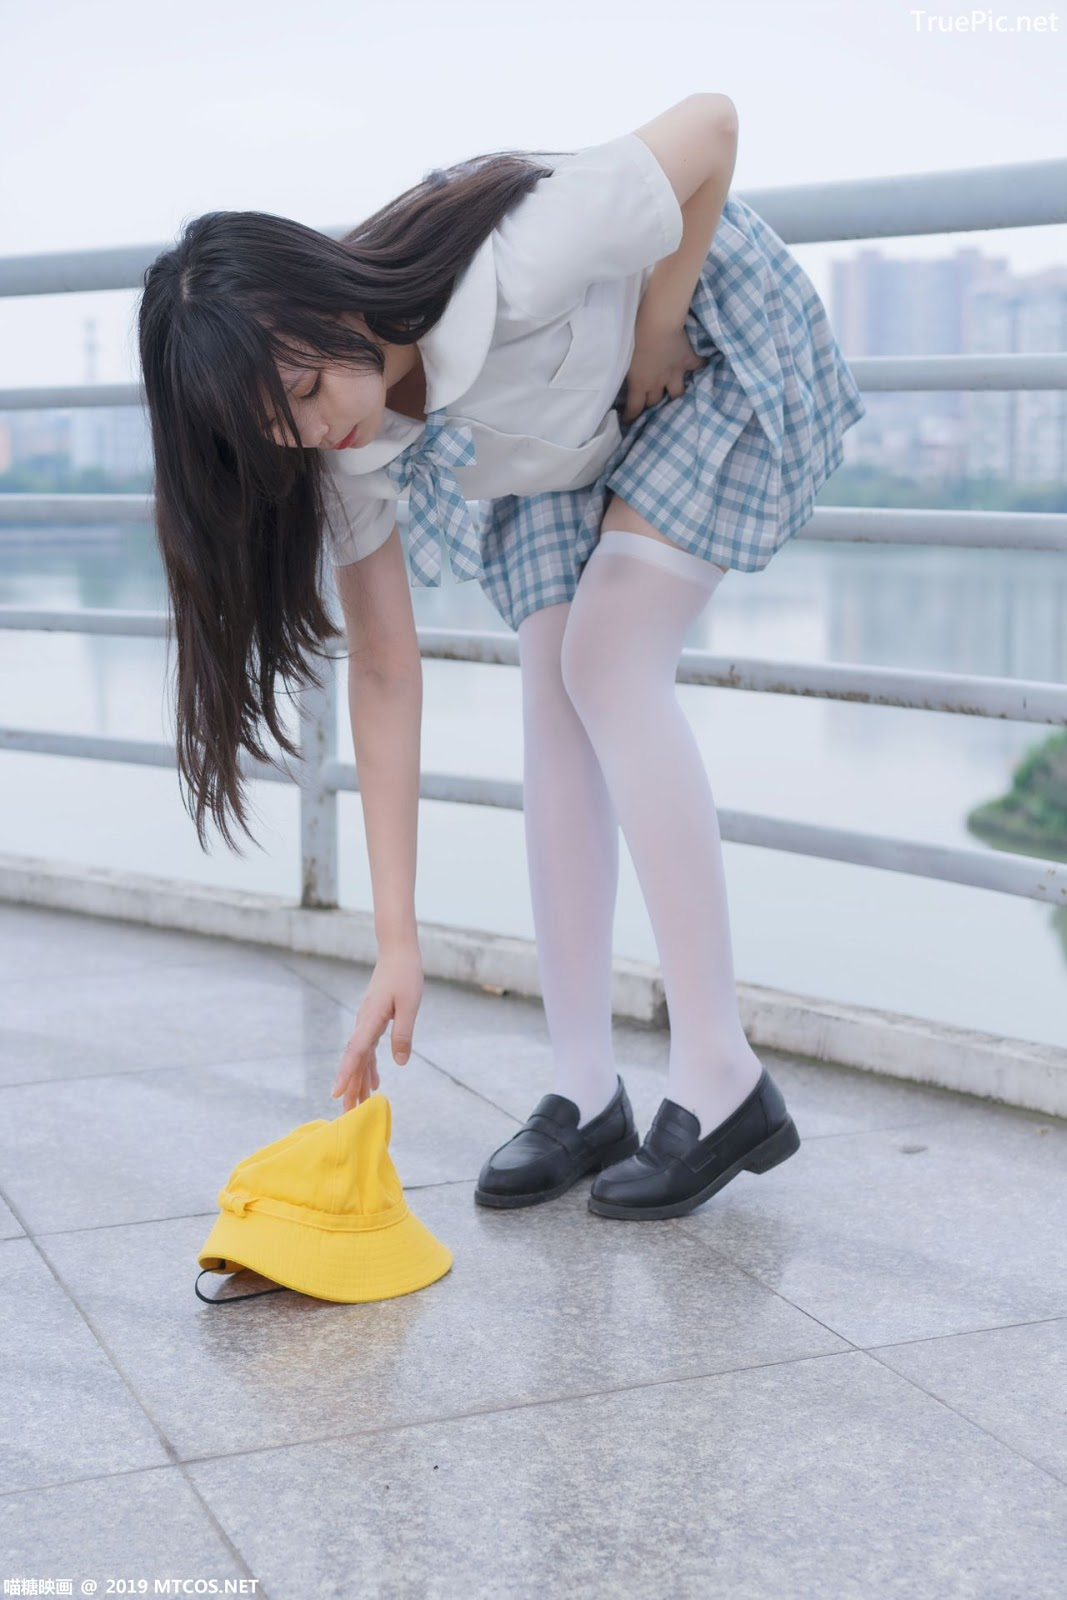 Image [MTCos] 喵糖映画 Vol.015 – Chinese Cute Model - White Shirt and Plaid Skirt - TruePic.net- Picture-2